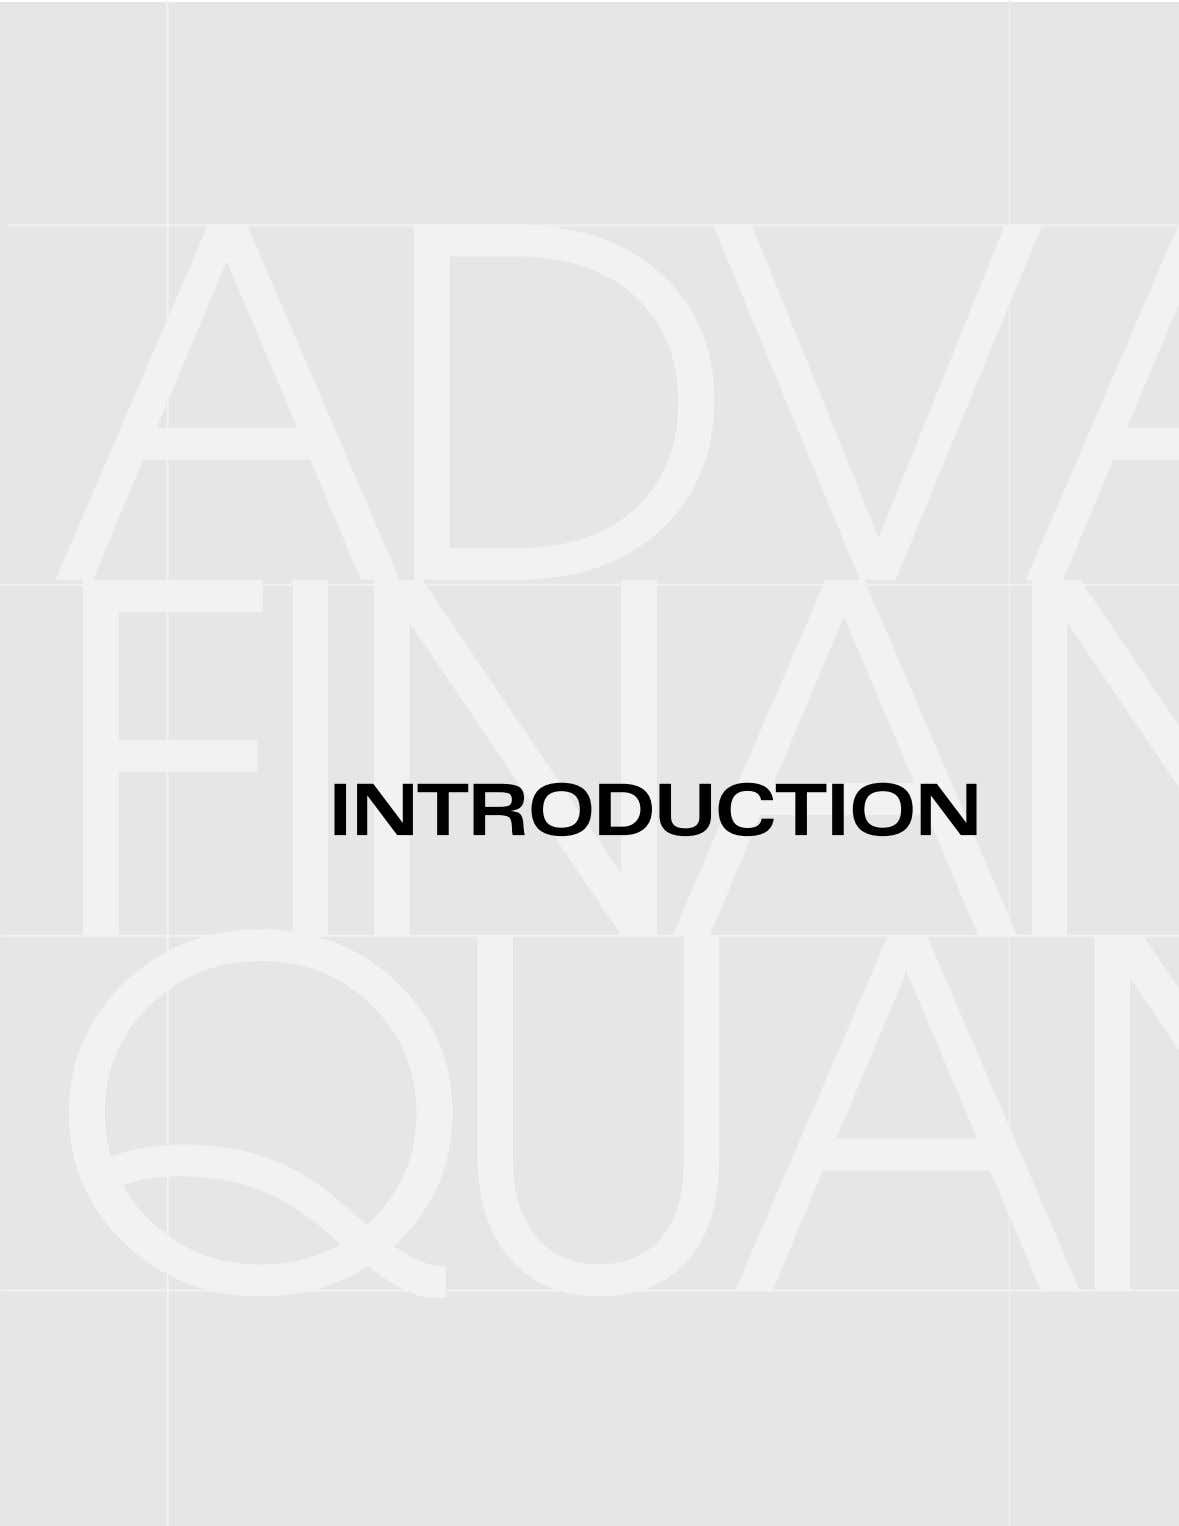 ADV FINAN INTRODUCTION QUA